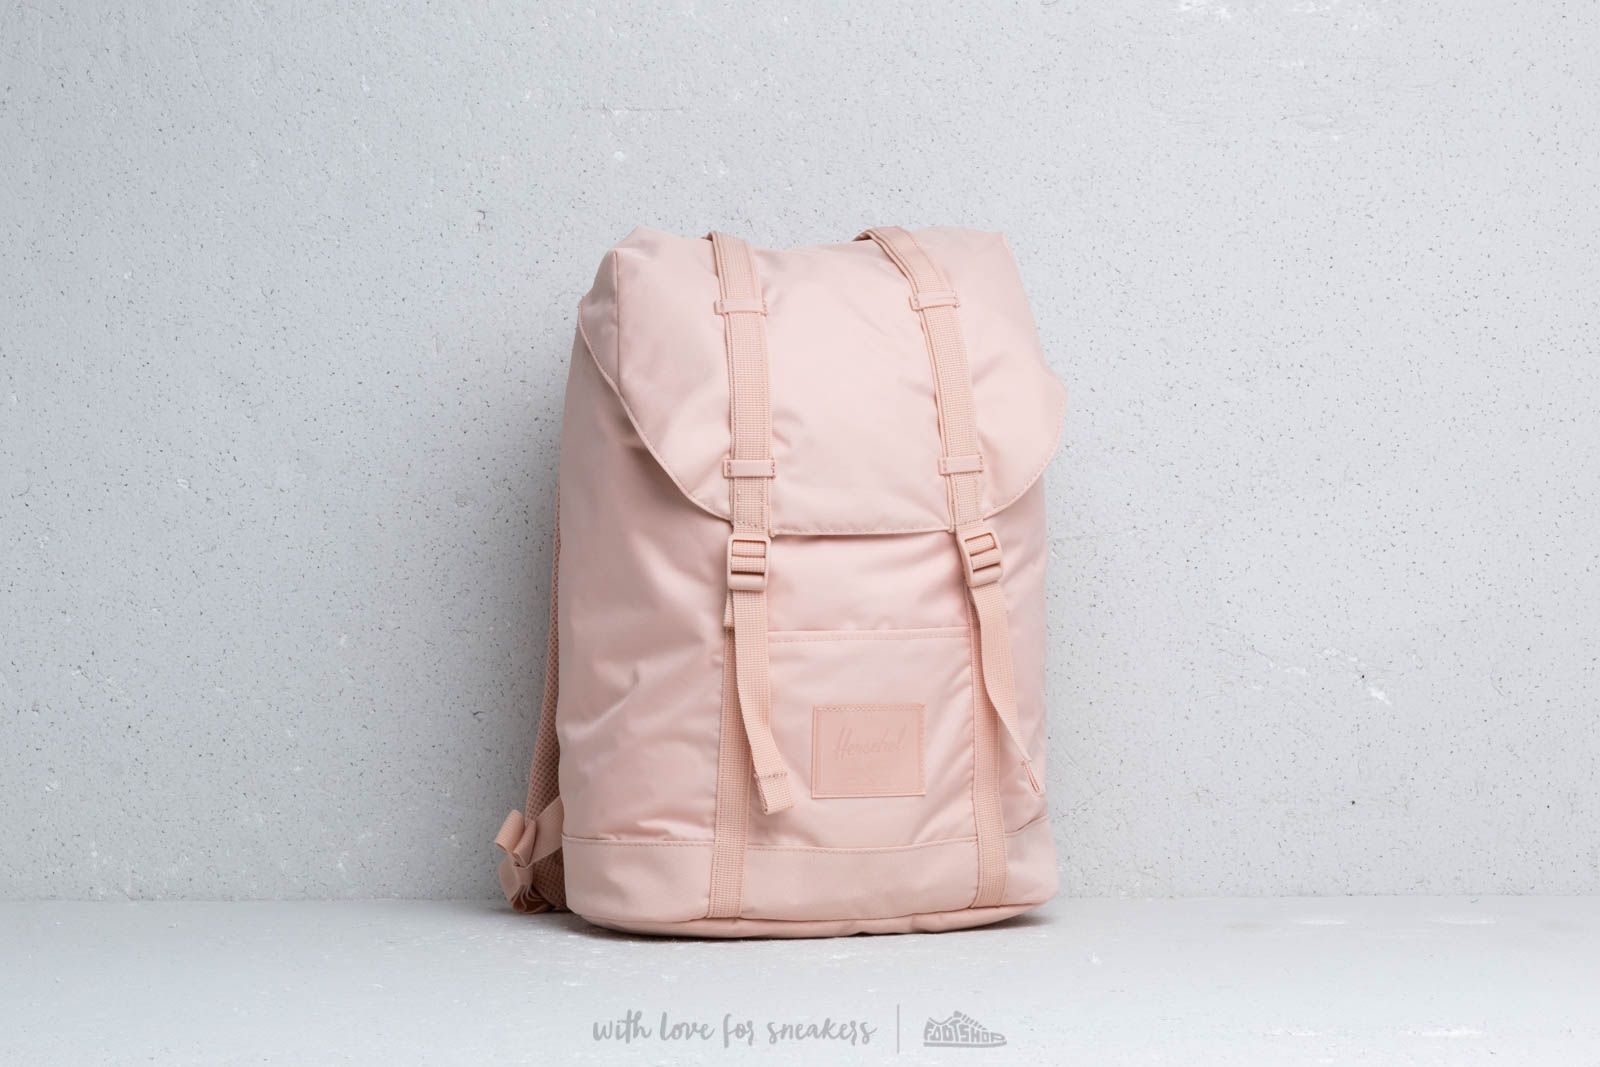 d8e18f36cf93 Herschel Supply Co. Retreat Light Backpack Cameo Rose at a great price  123  buy at